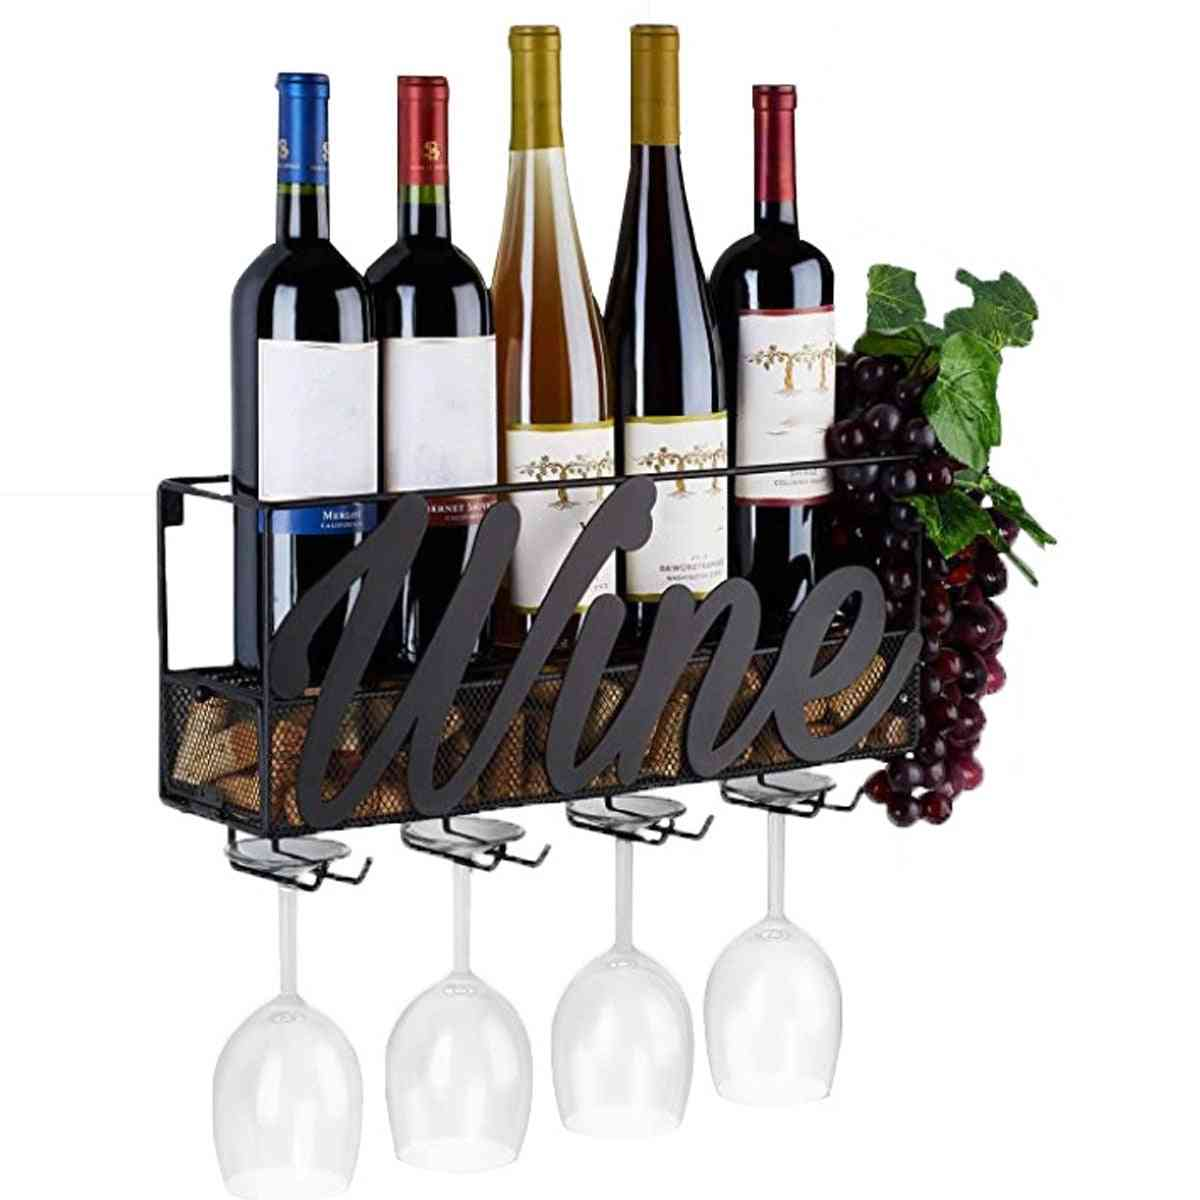 Wall Mounted Wine Rack Bottle Champagne Shelf With Extra Cork Tray